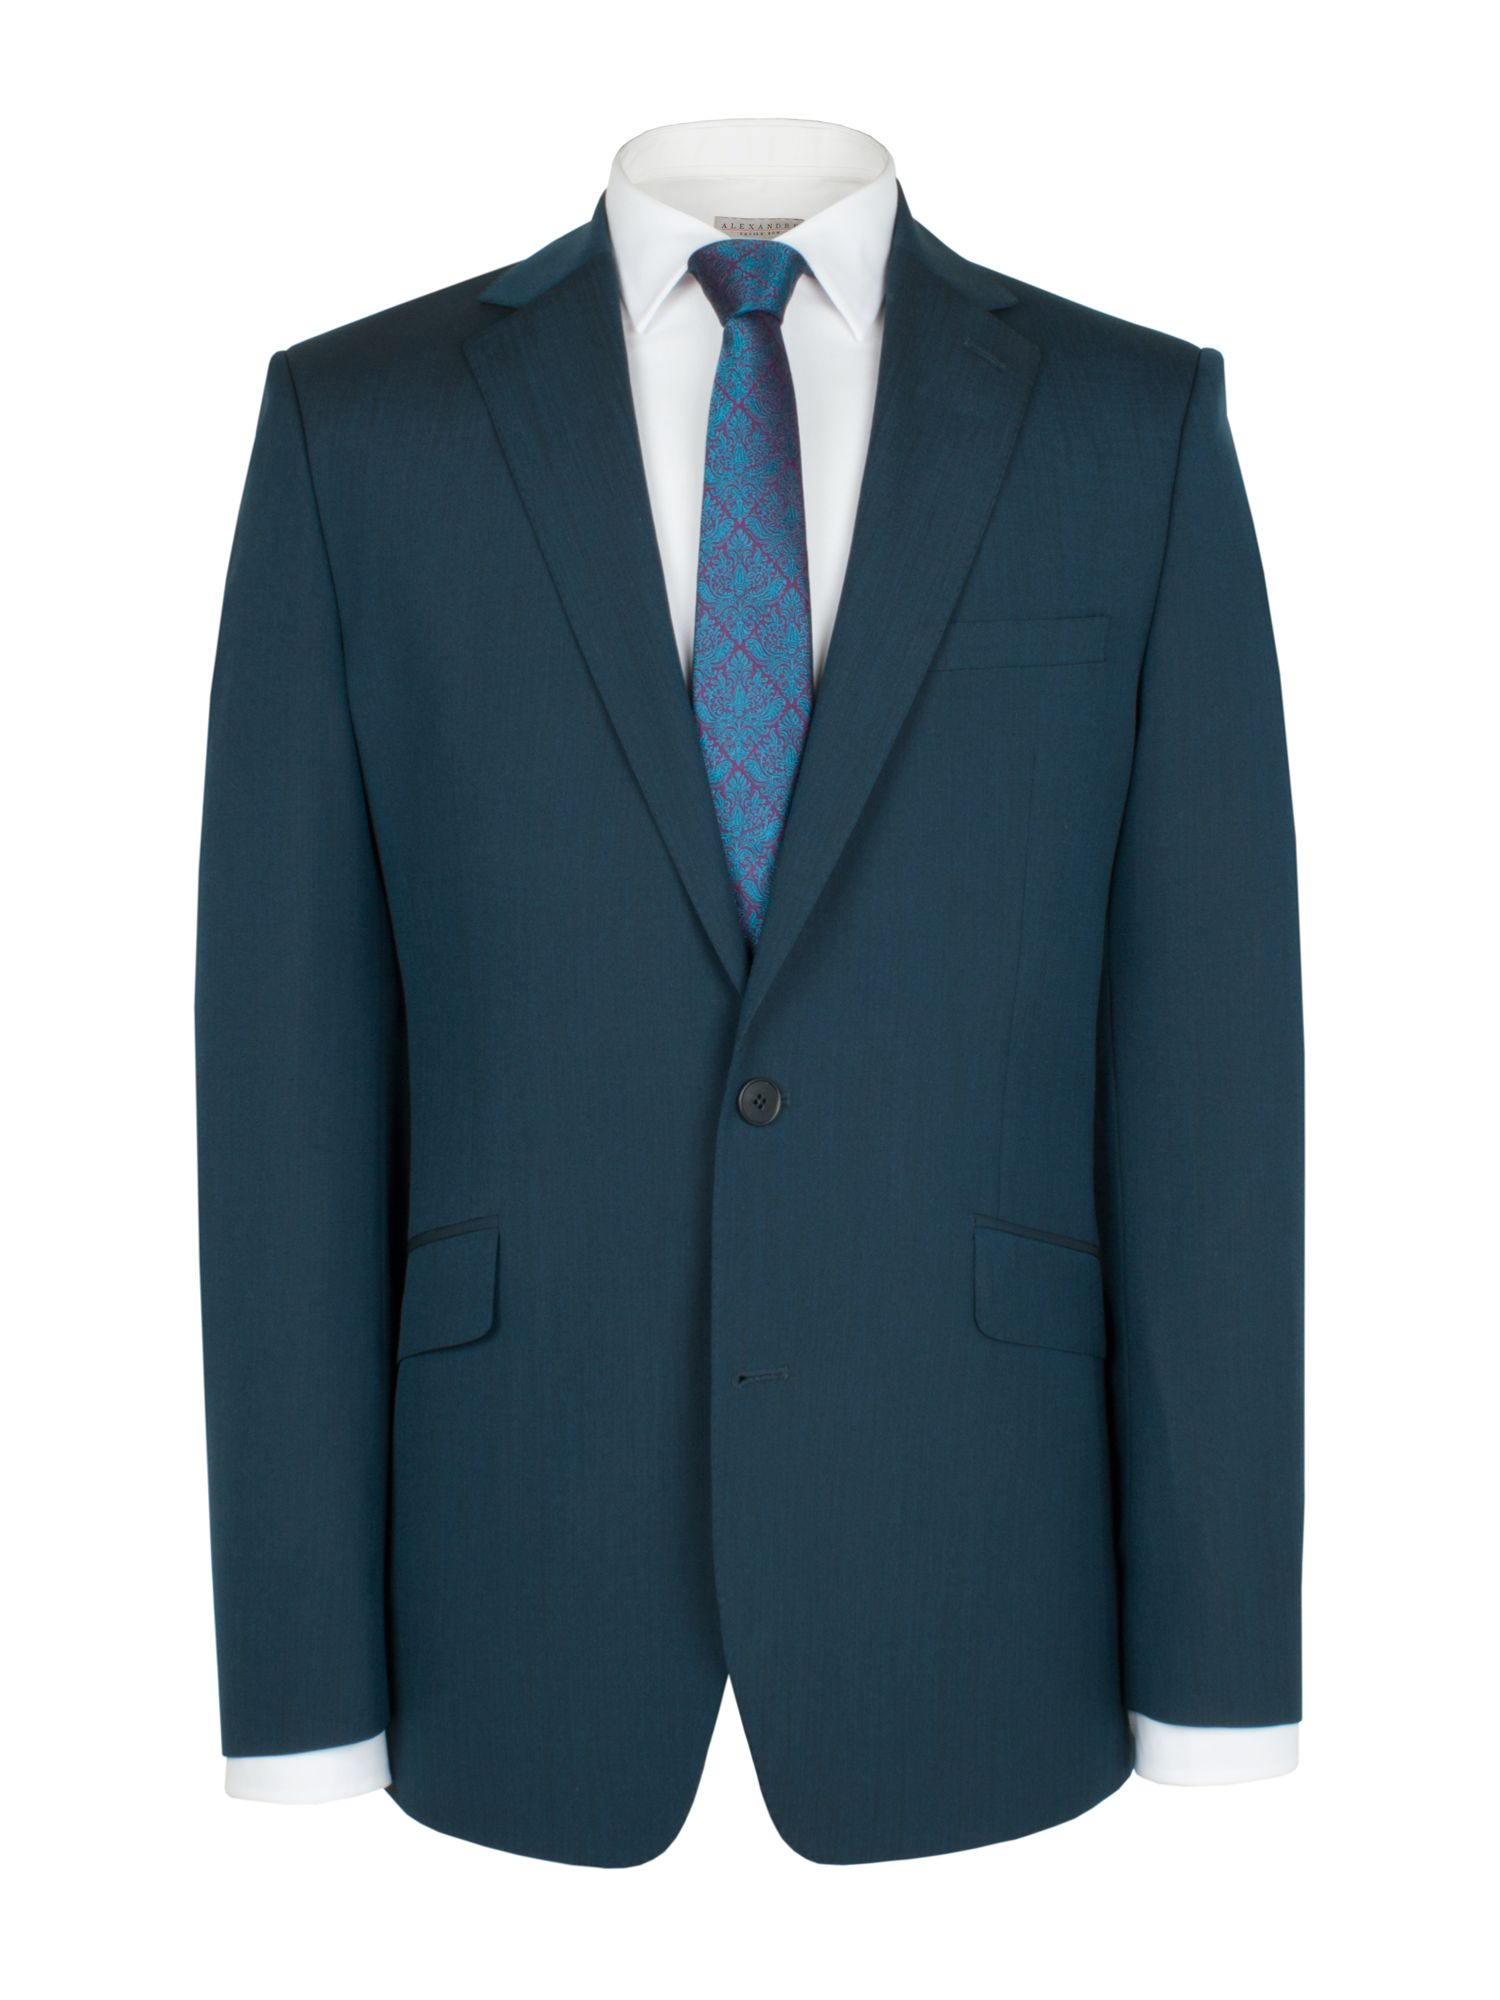 Teal tonic suit